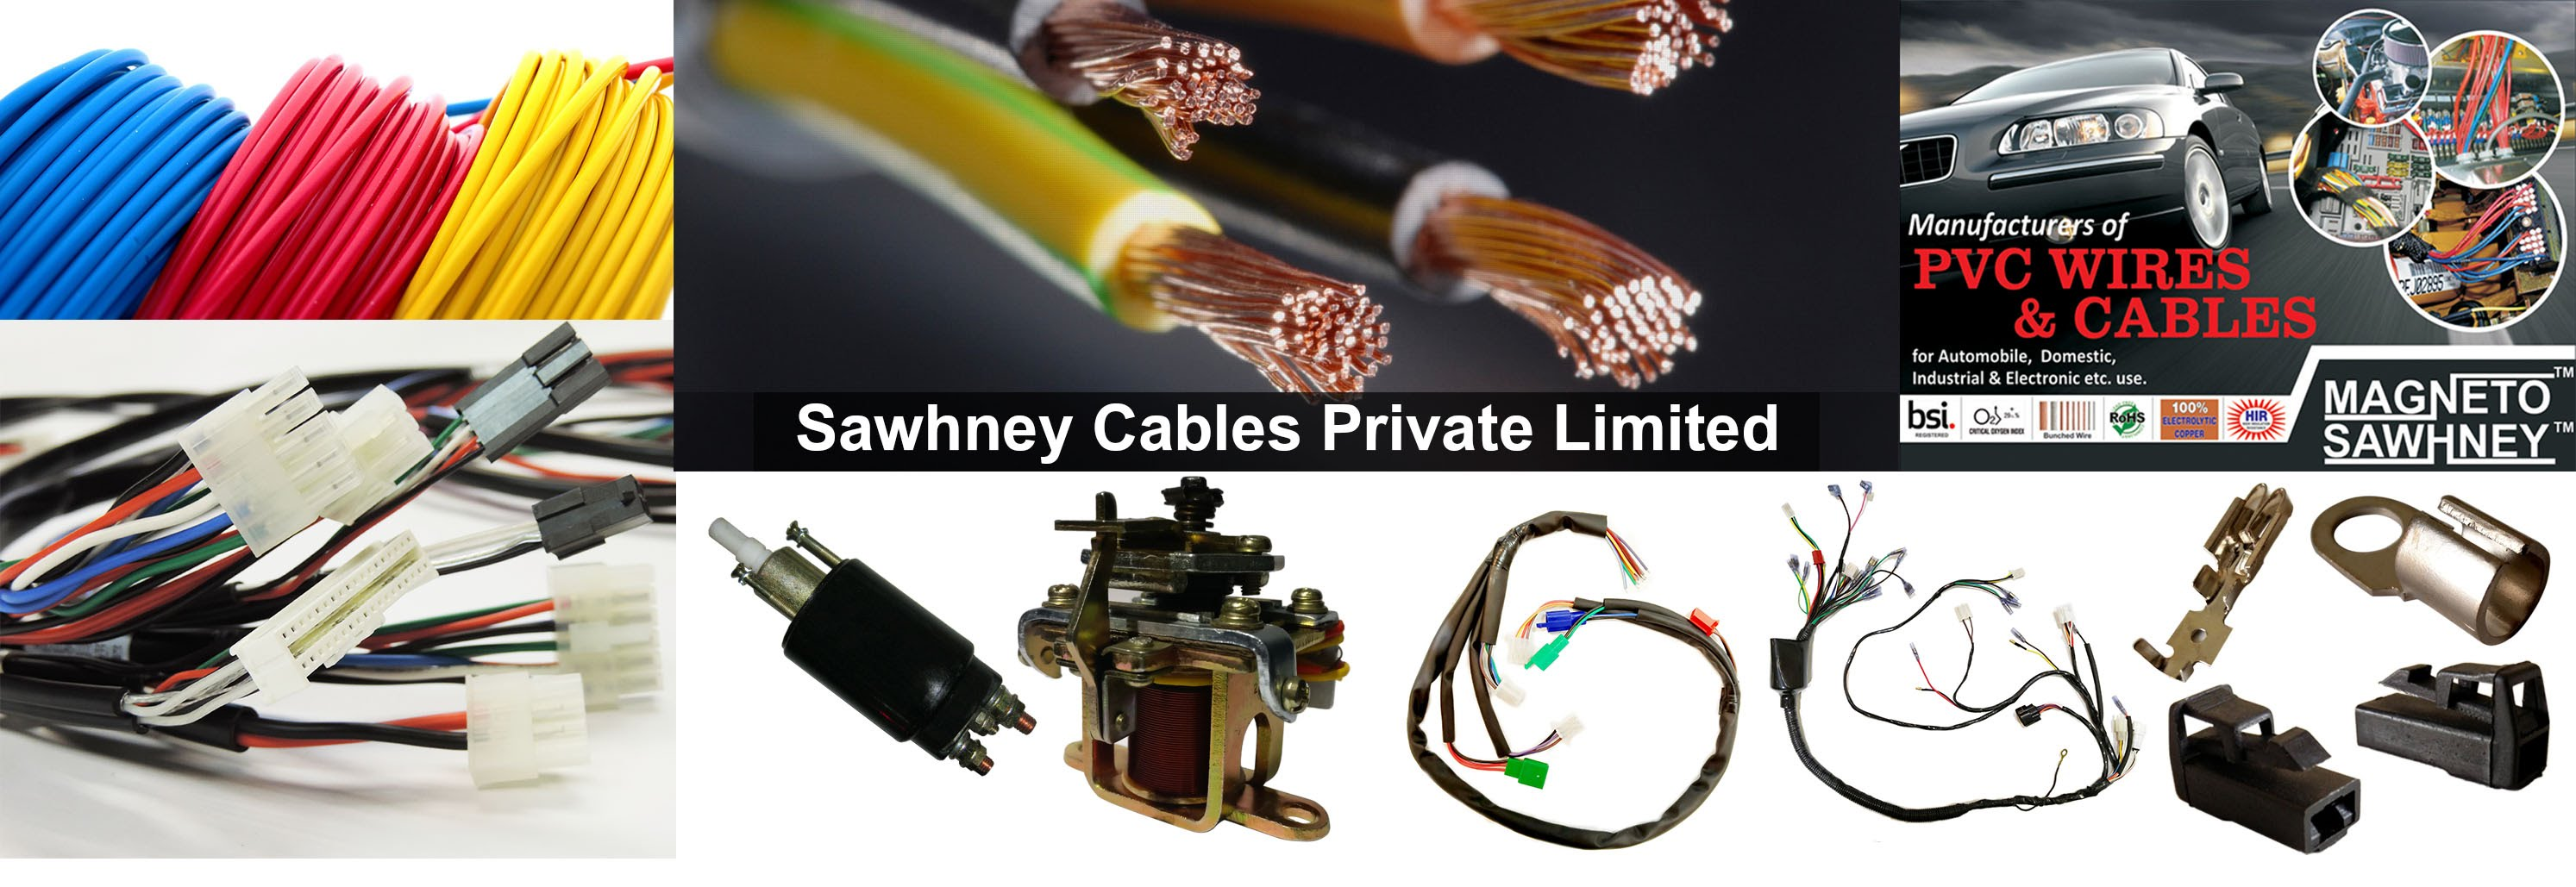 All Kinds Of Pvc Wires Cables Wiring Harness Electrical Auto Automotive Wire Supplier About Us